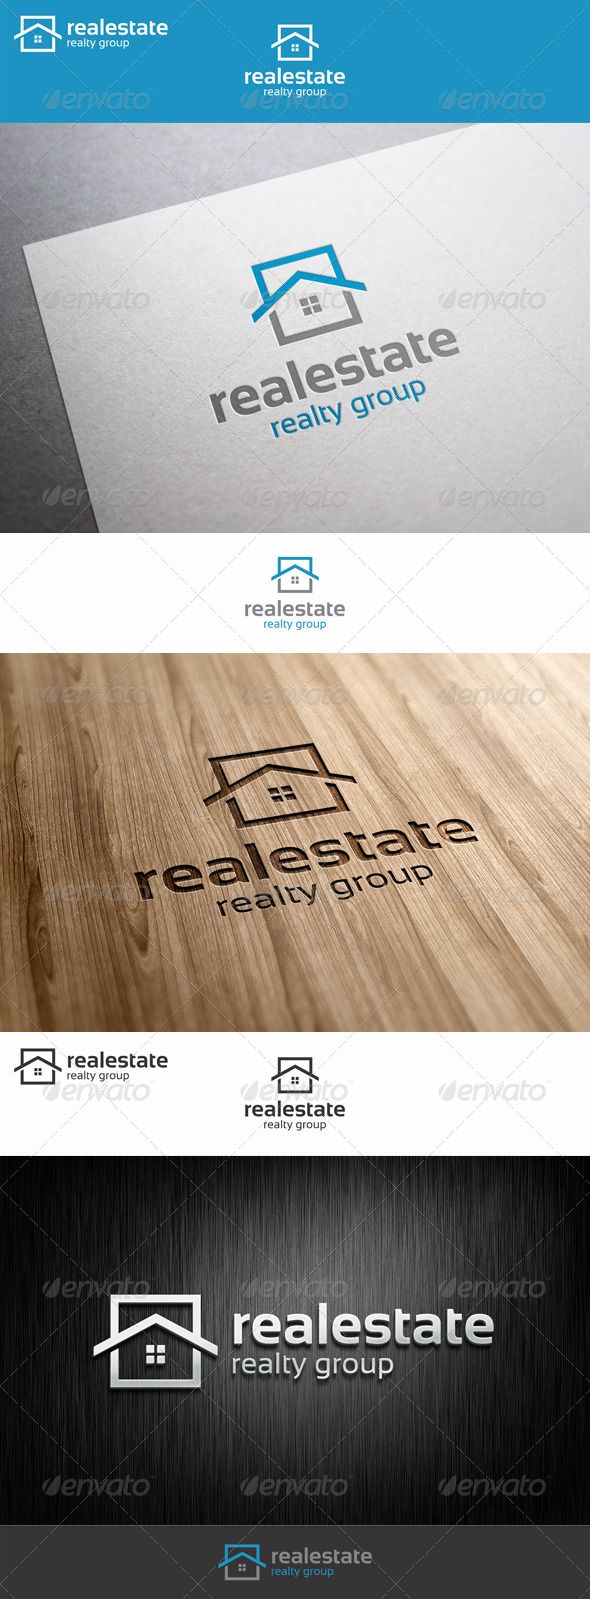 Real Estate Logo  Realty Group — Vector EPS #construction #mortgage • Available here → https://graphicriver.net/item/real-estate-logo-realty-group/7420389?ref=pxcr